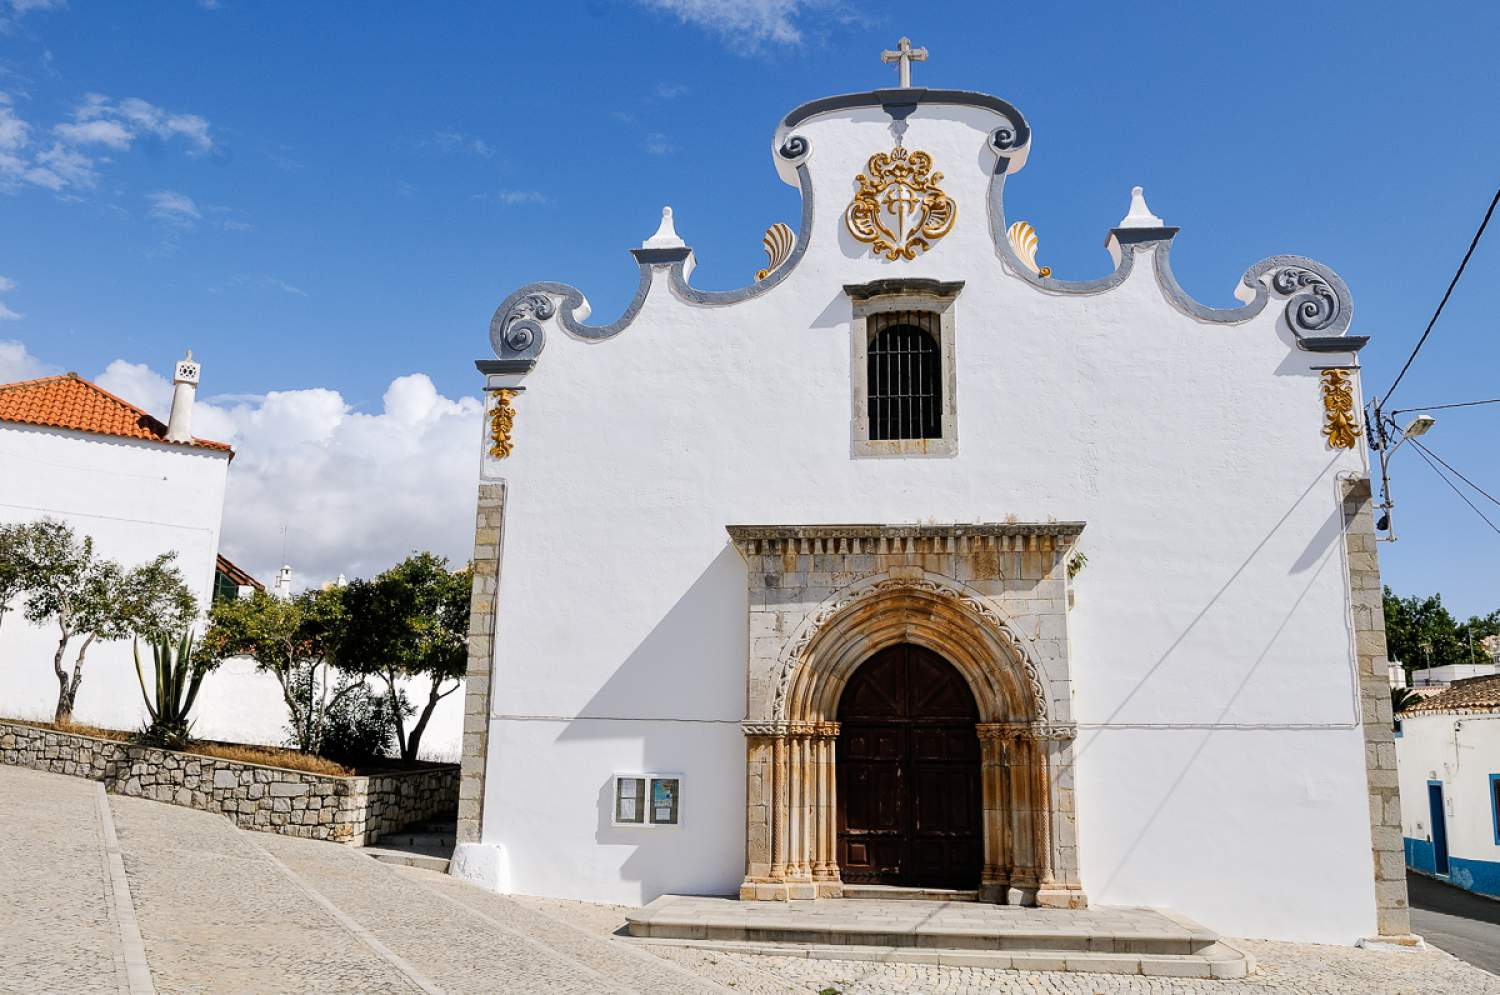 Church in Quarteira, Portugal